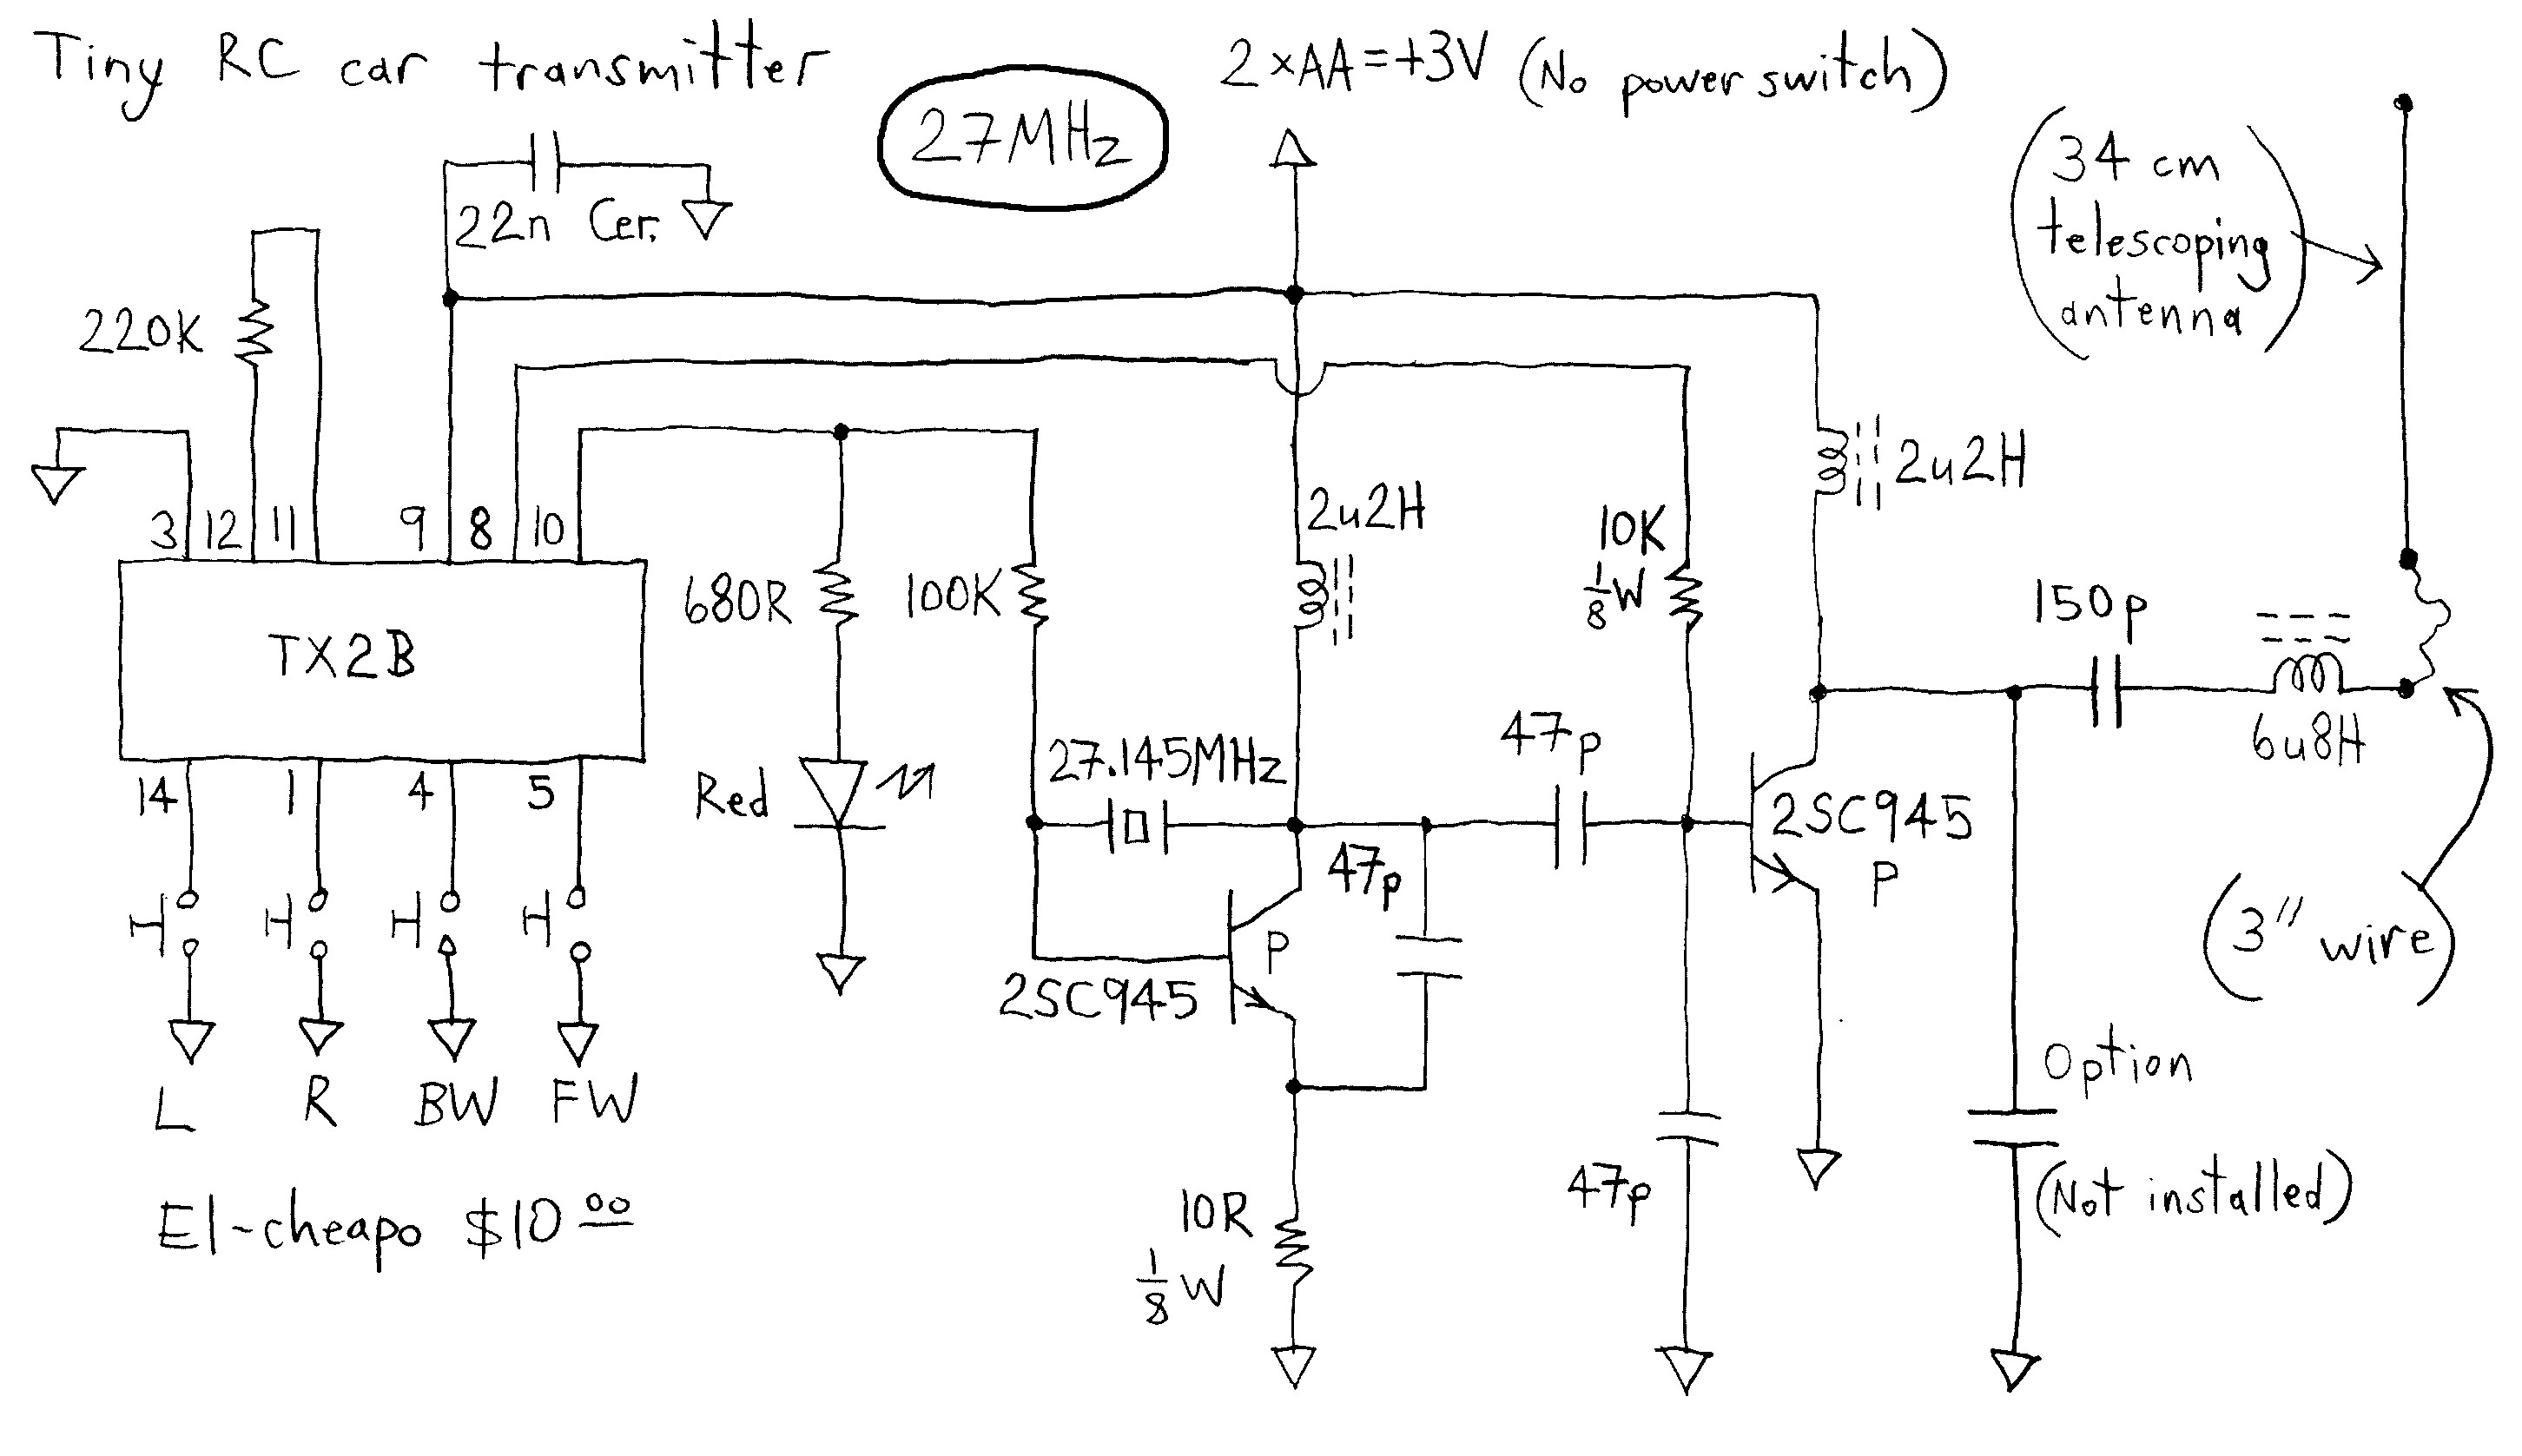 Circuit Diagram Of Remote Control Car Remote Control Car Circuit Diagram Zen Wiring Diagram Ponents Of Circuit Diagram Of Remote Control Car